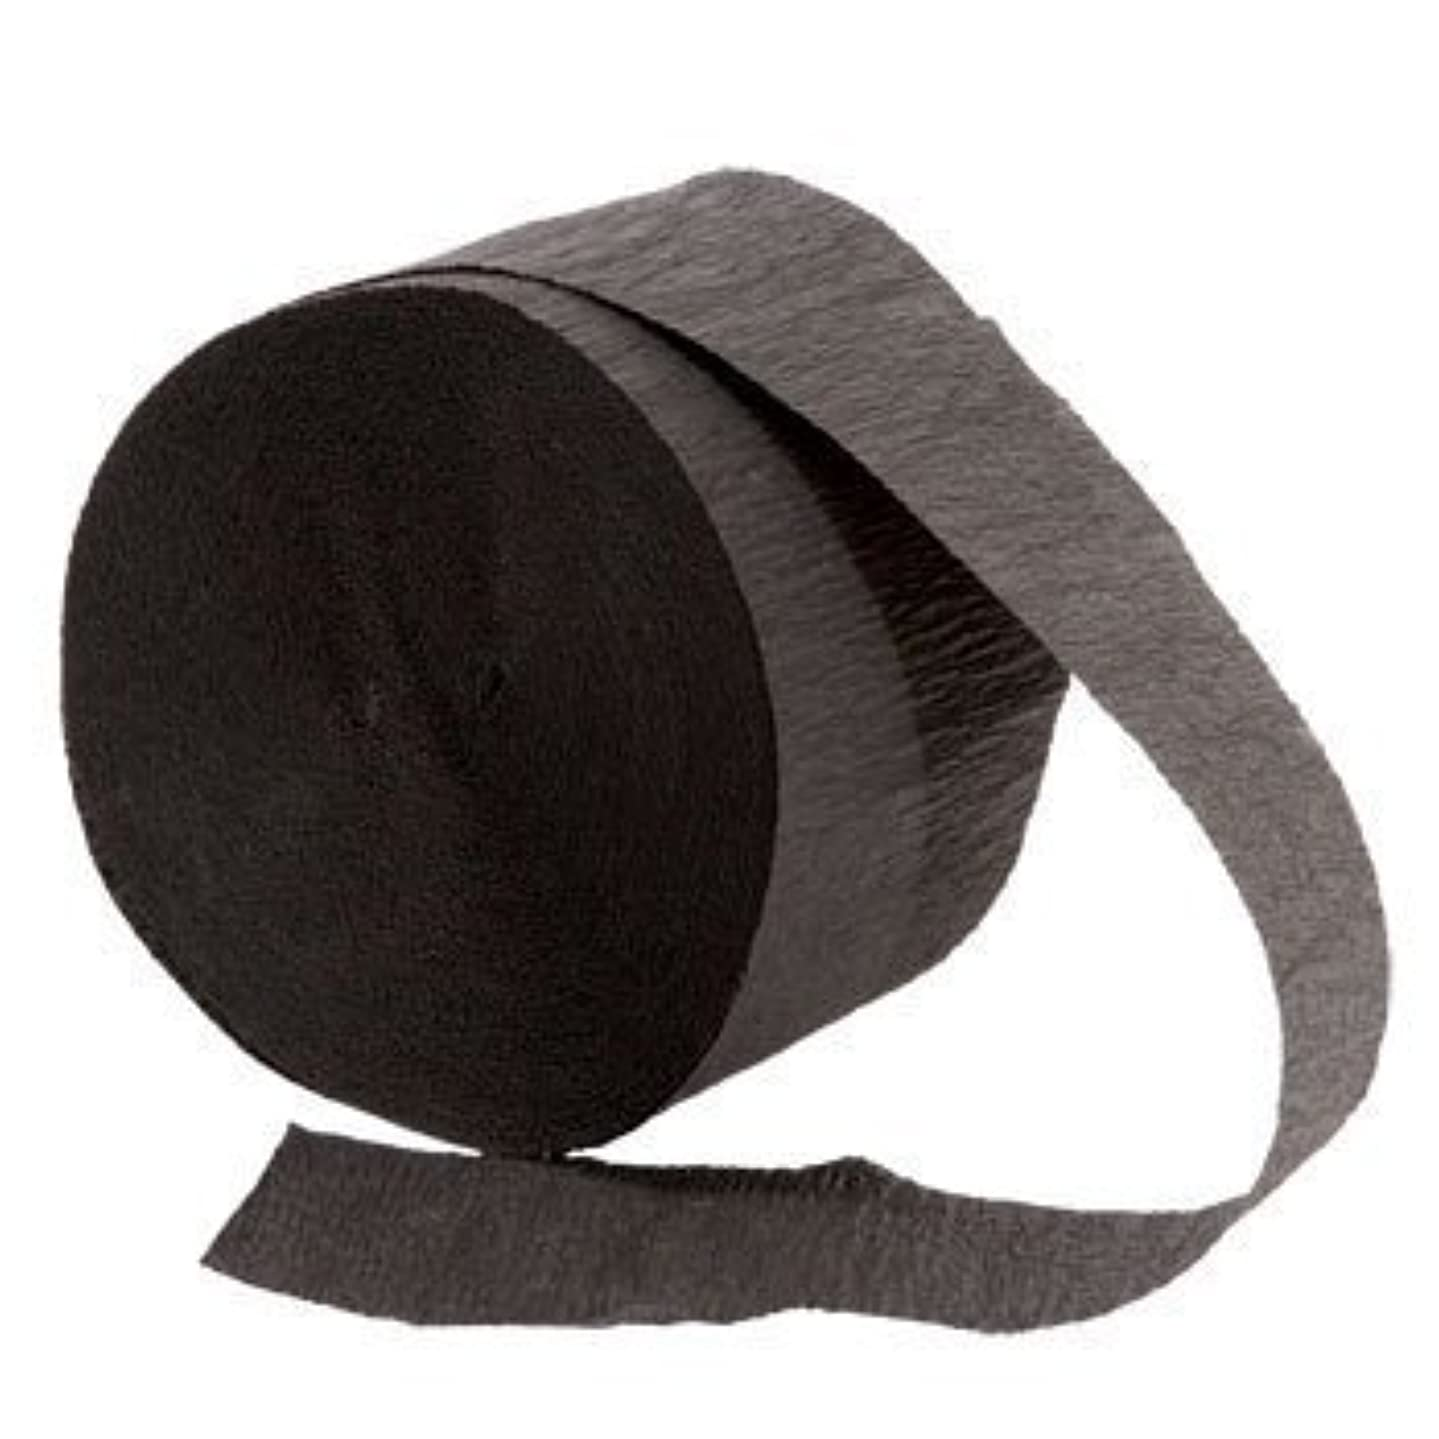 4 ROLLS, BLACK Crepe Paper Streamers 290 ft Total - Made in USA! by Greenbrier International Inc